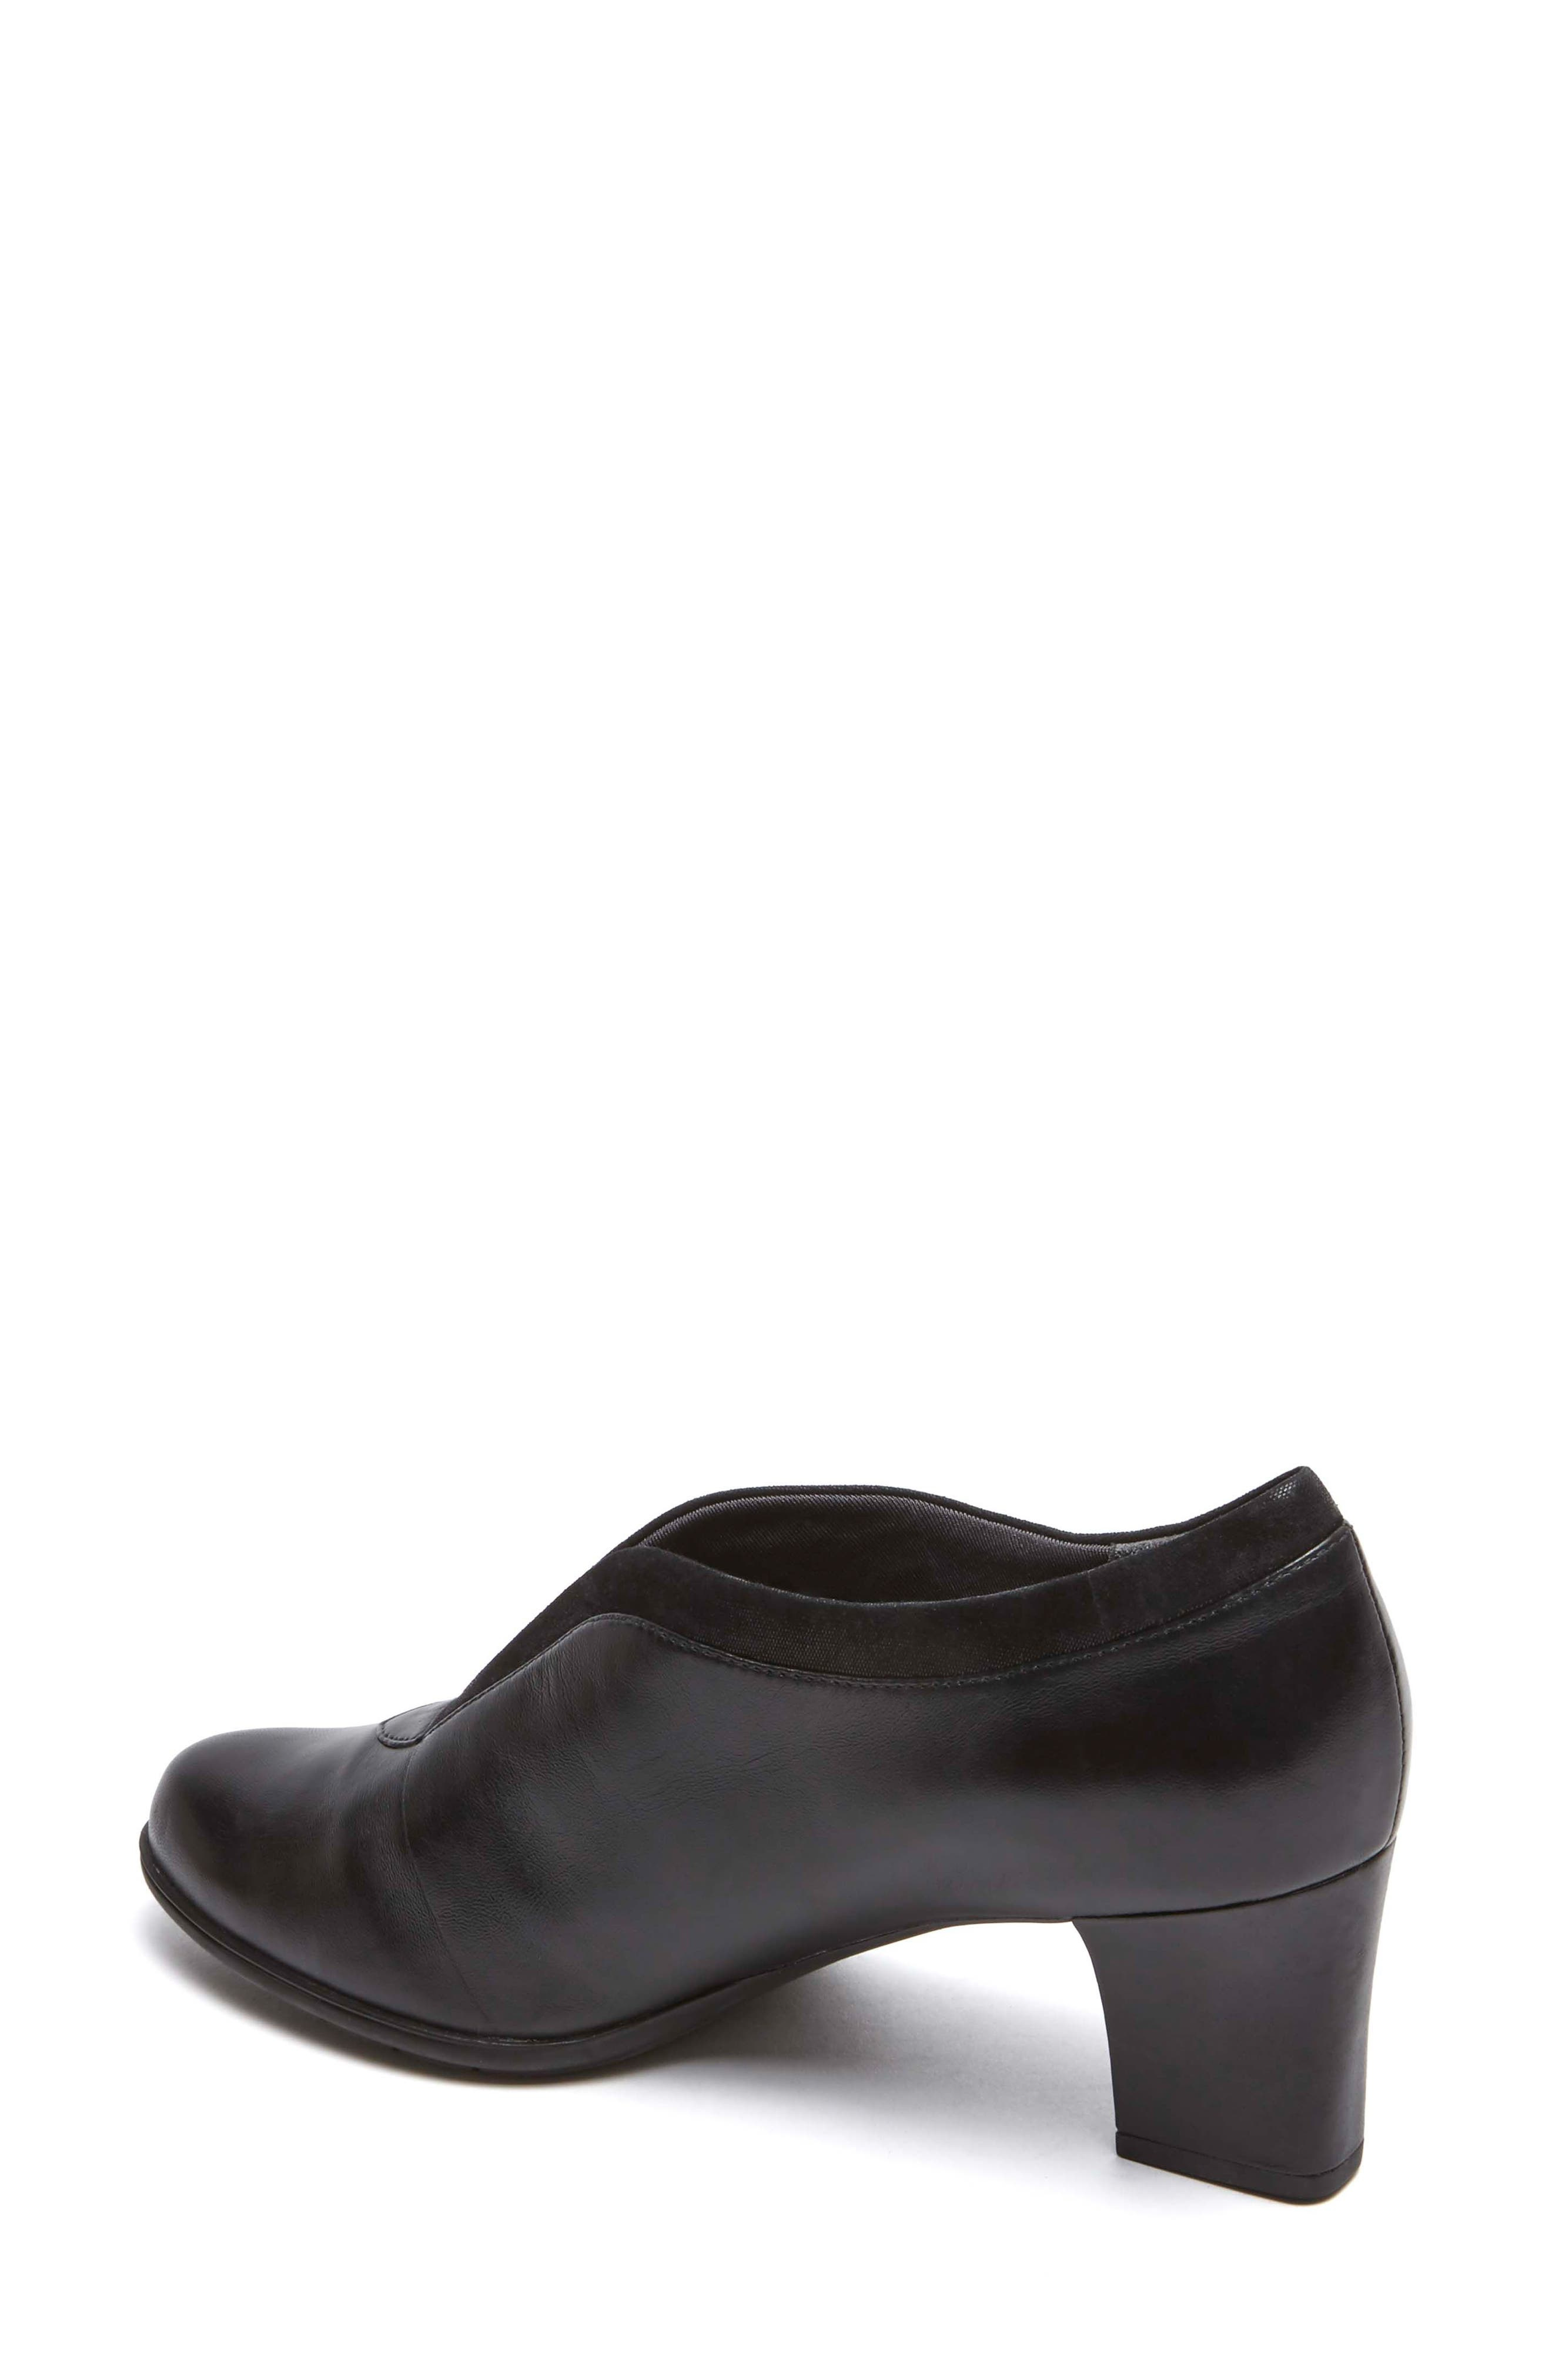 Esty Luxe Pump,                             Alternate thumbnail 2, color,                             BLACK LEATHER